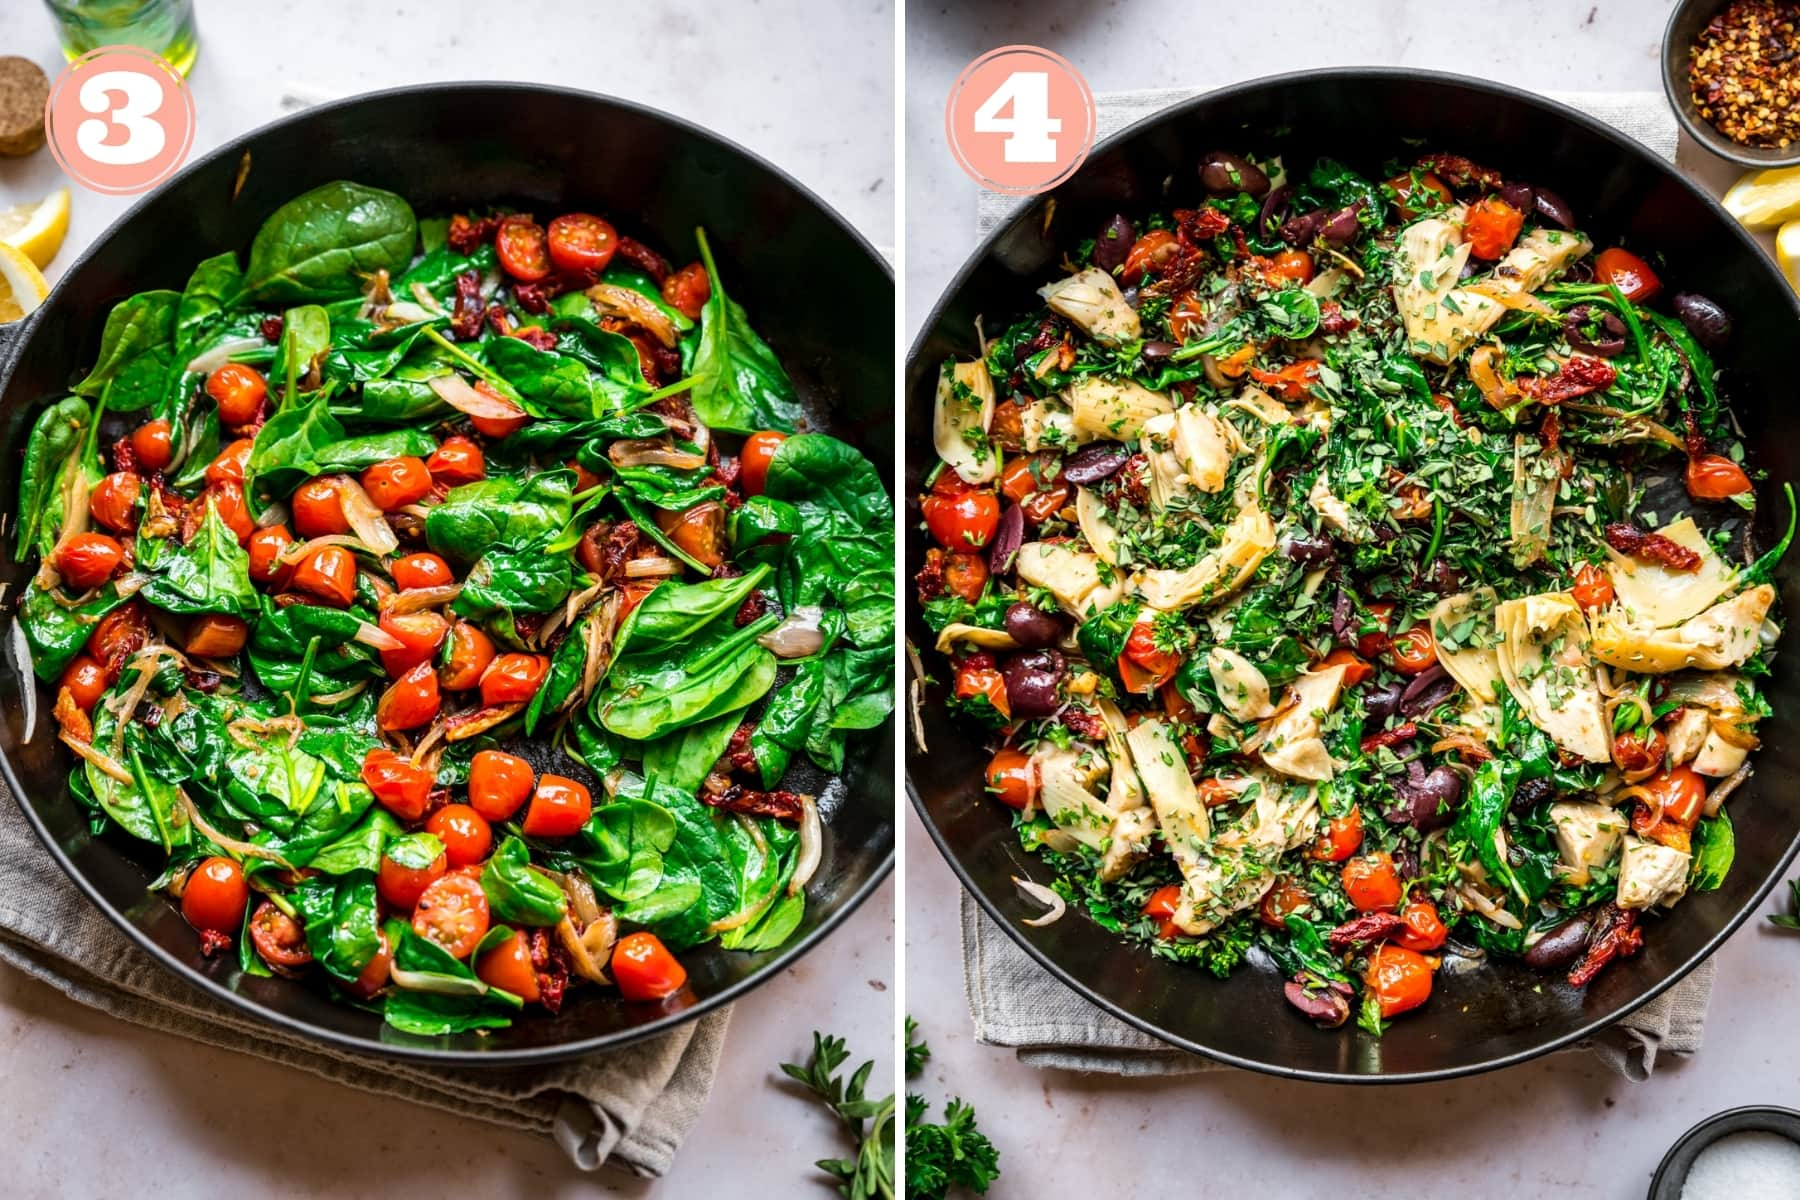 on the left: sautéed spinach and tomatoes. on the right: sautéed ingredients for greek pasta.